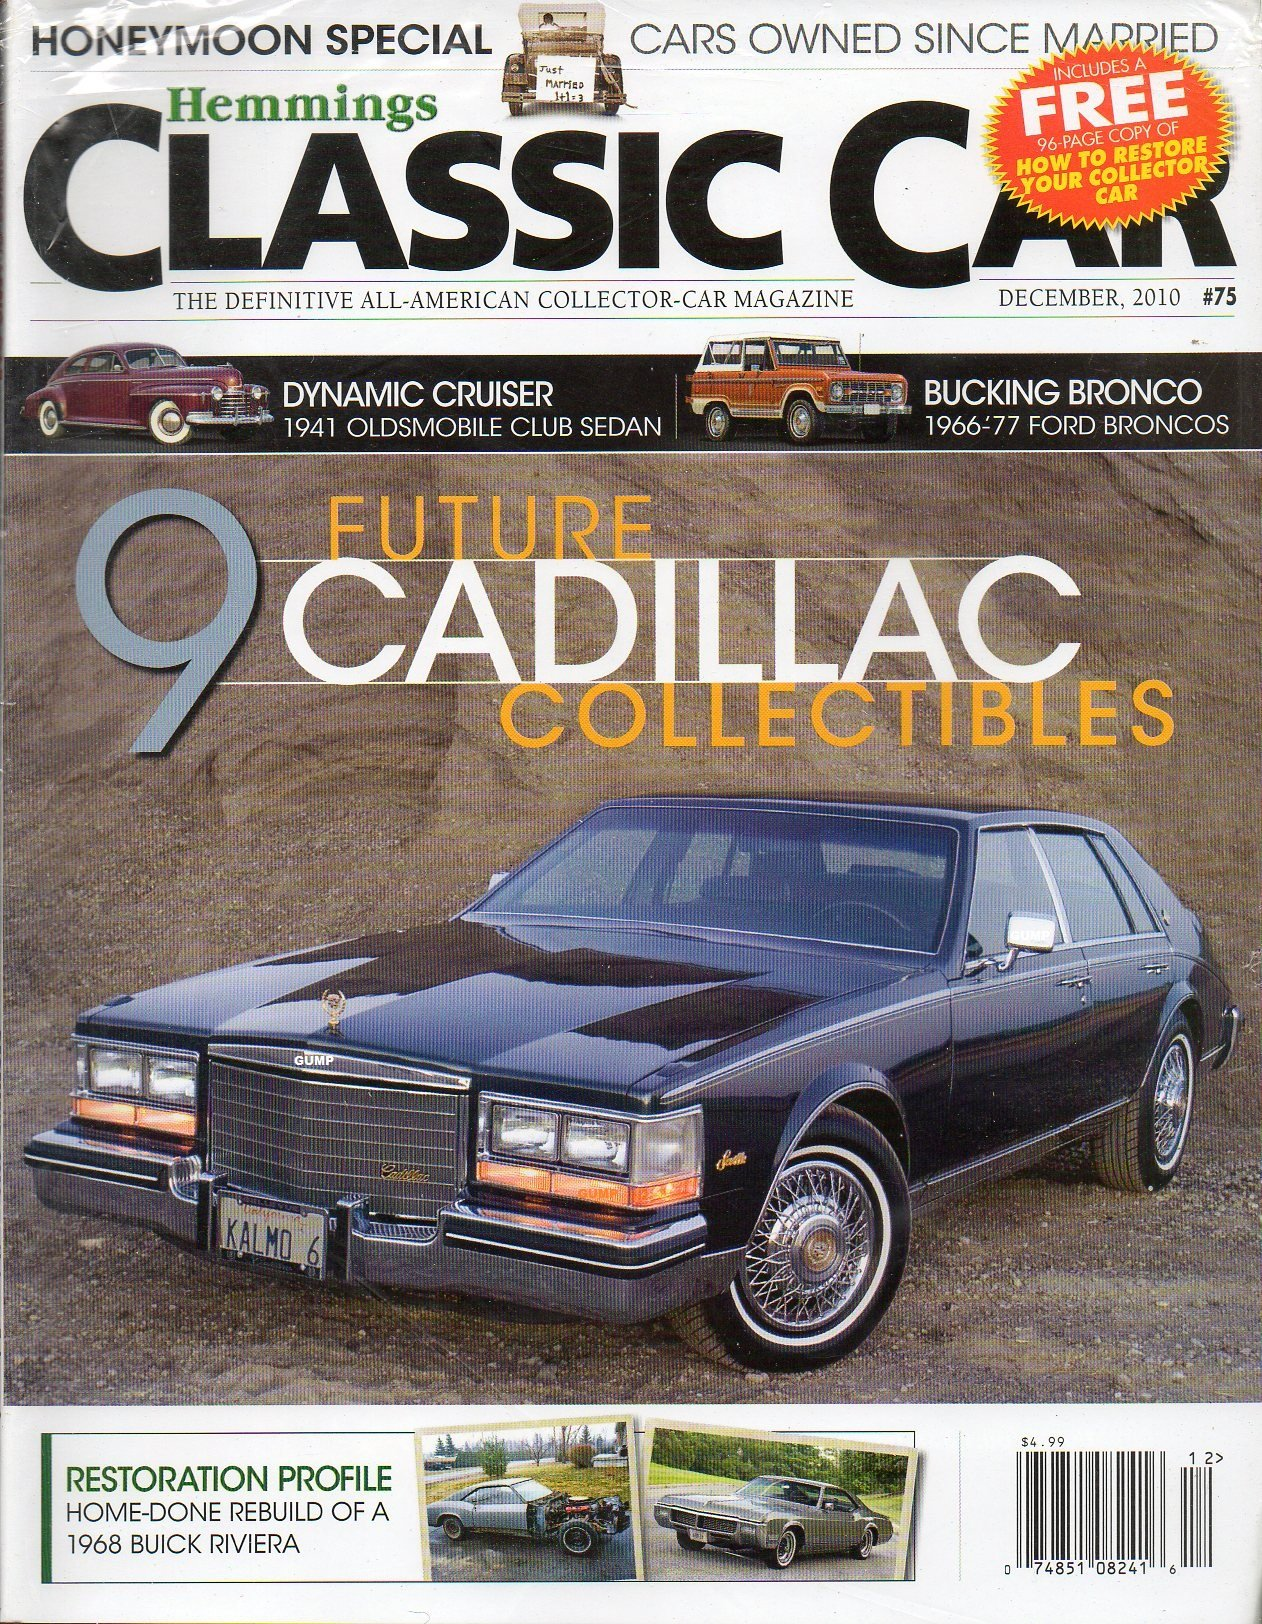 Hemmings Classic Car December 2010 Magazine Bonus 96 Page Collector 1941 Oldsmobile Club Coupe Restoration Guide 9 Future Cadillac Collectibles Unk Richard Lentinello